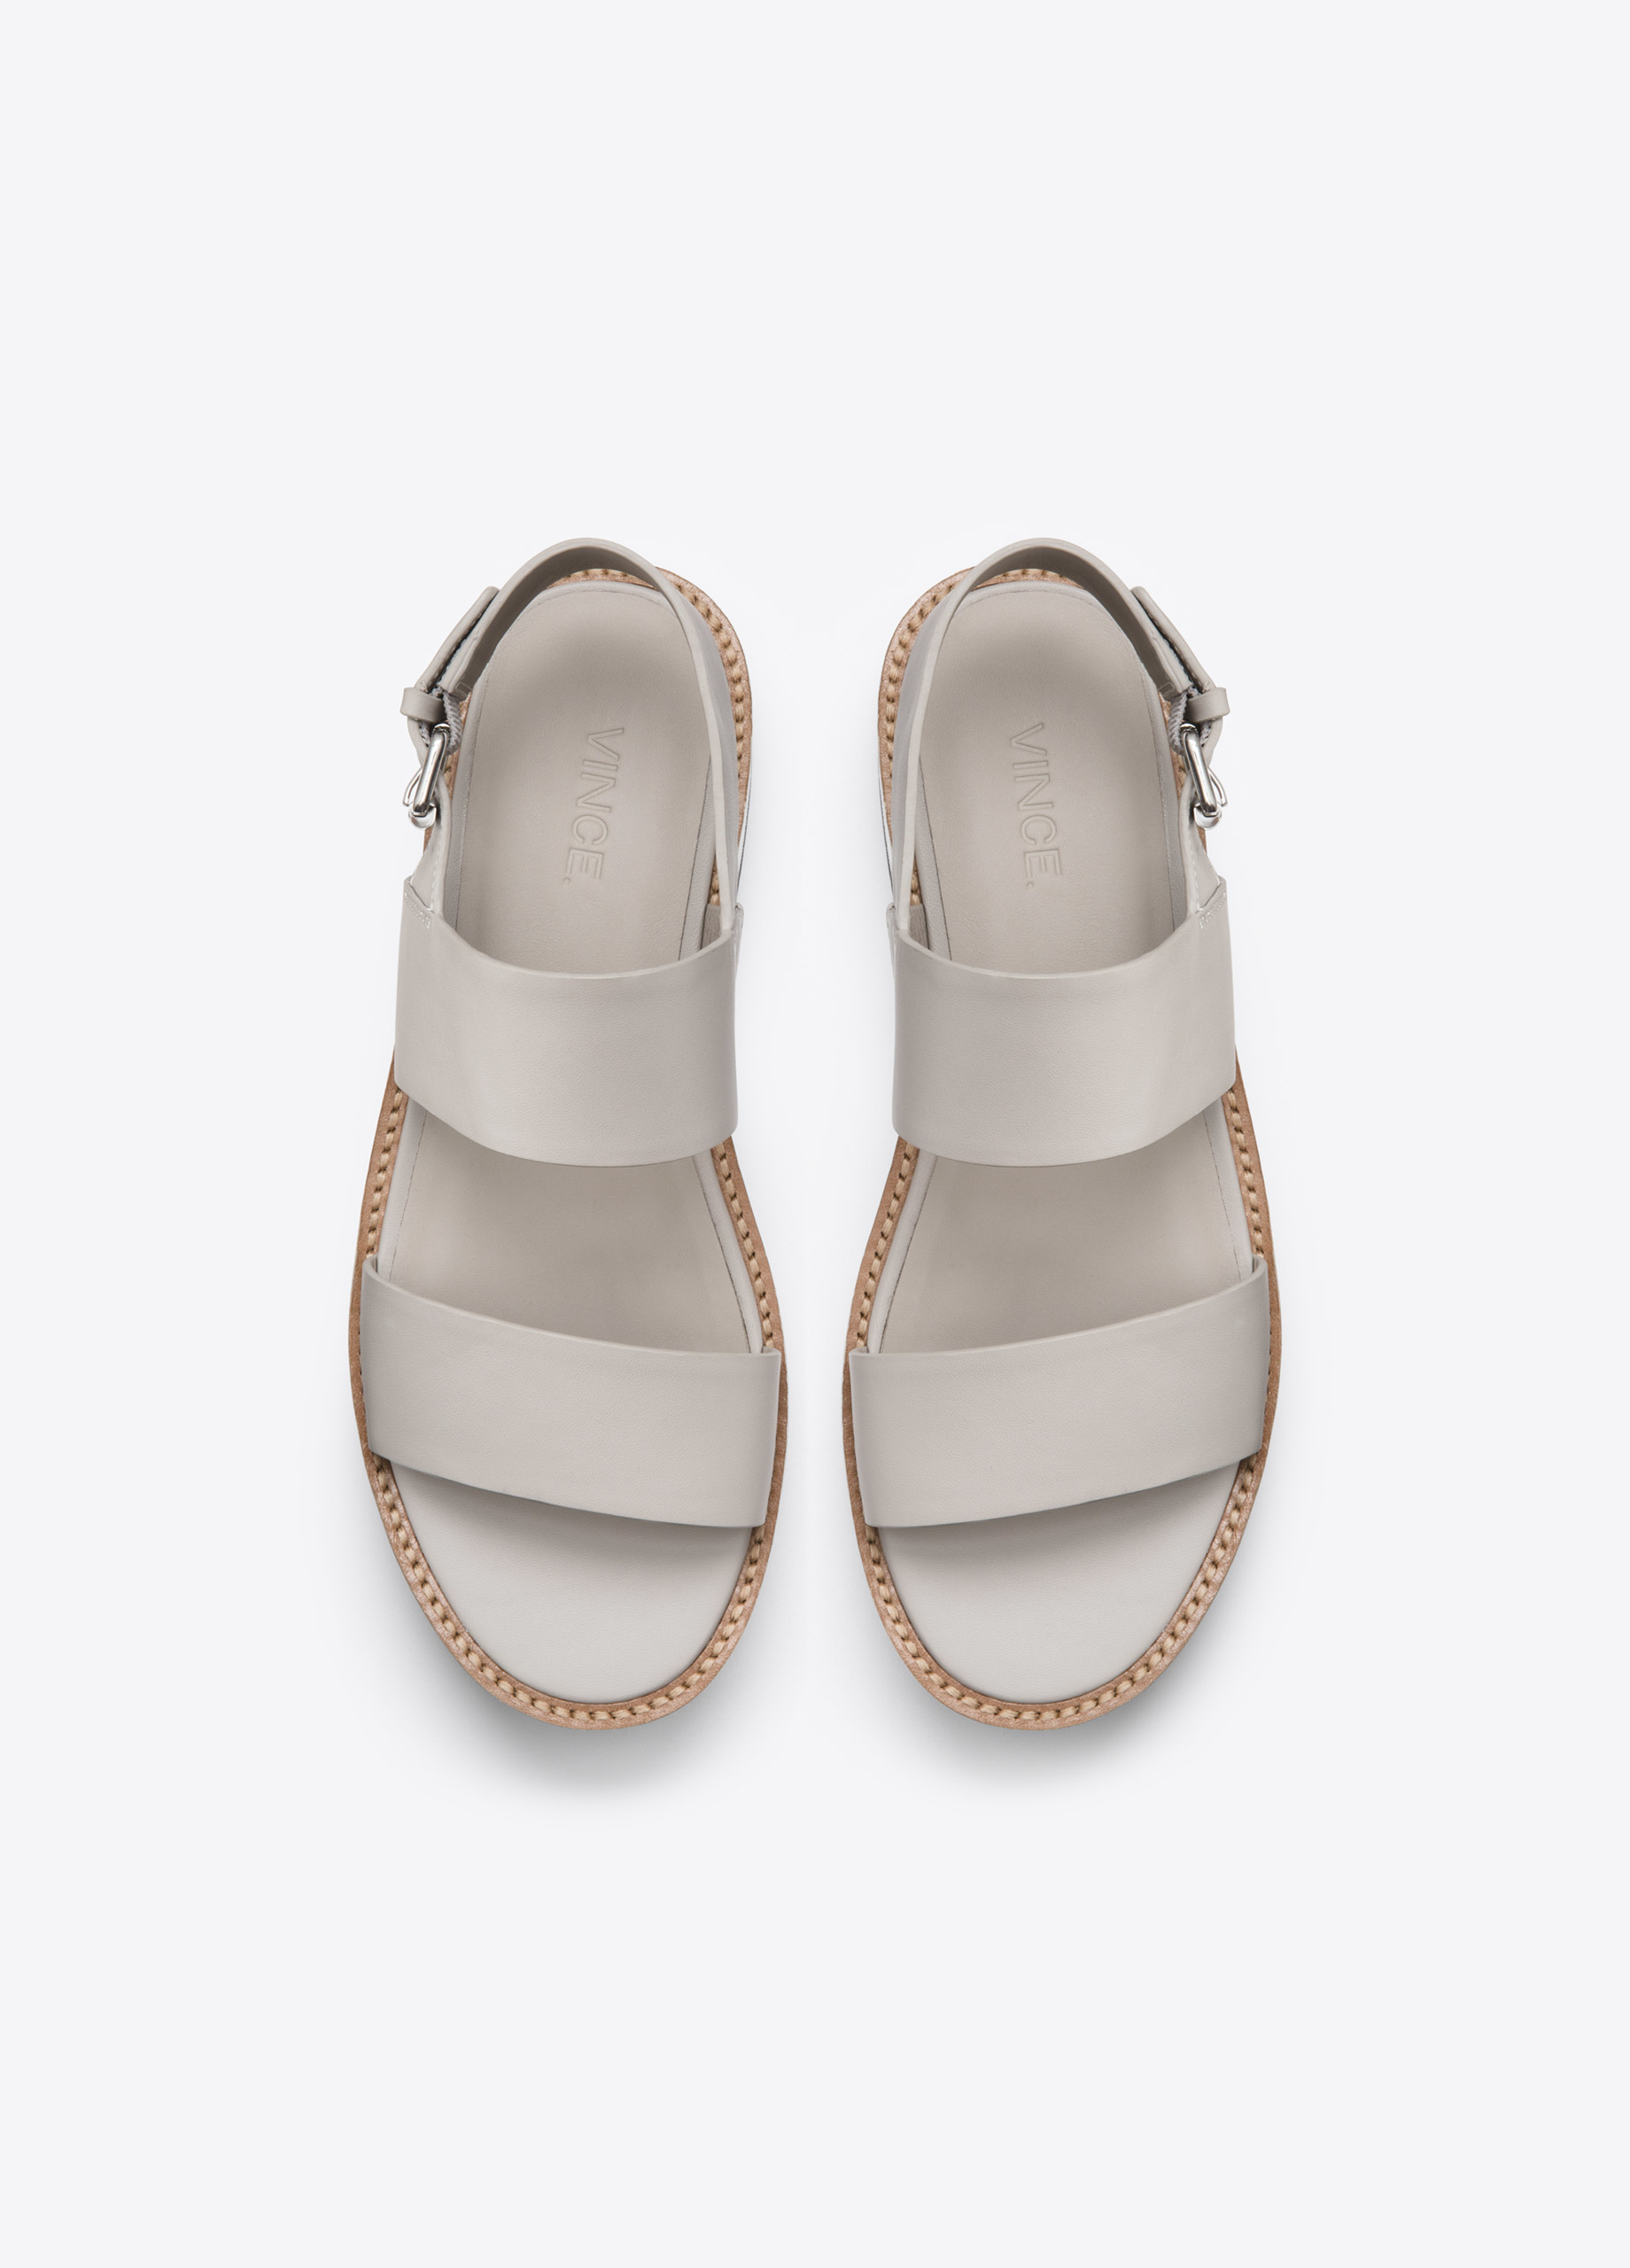 Lyst Vince Mana Leather Flatform Sandals In Gray